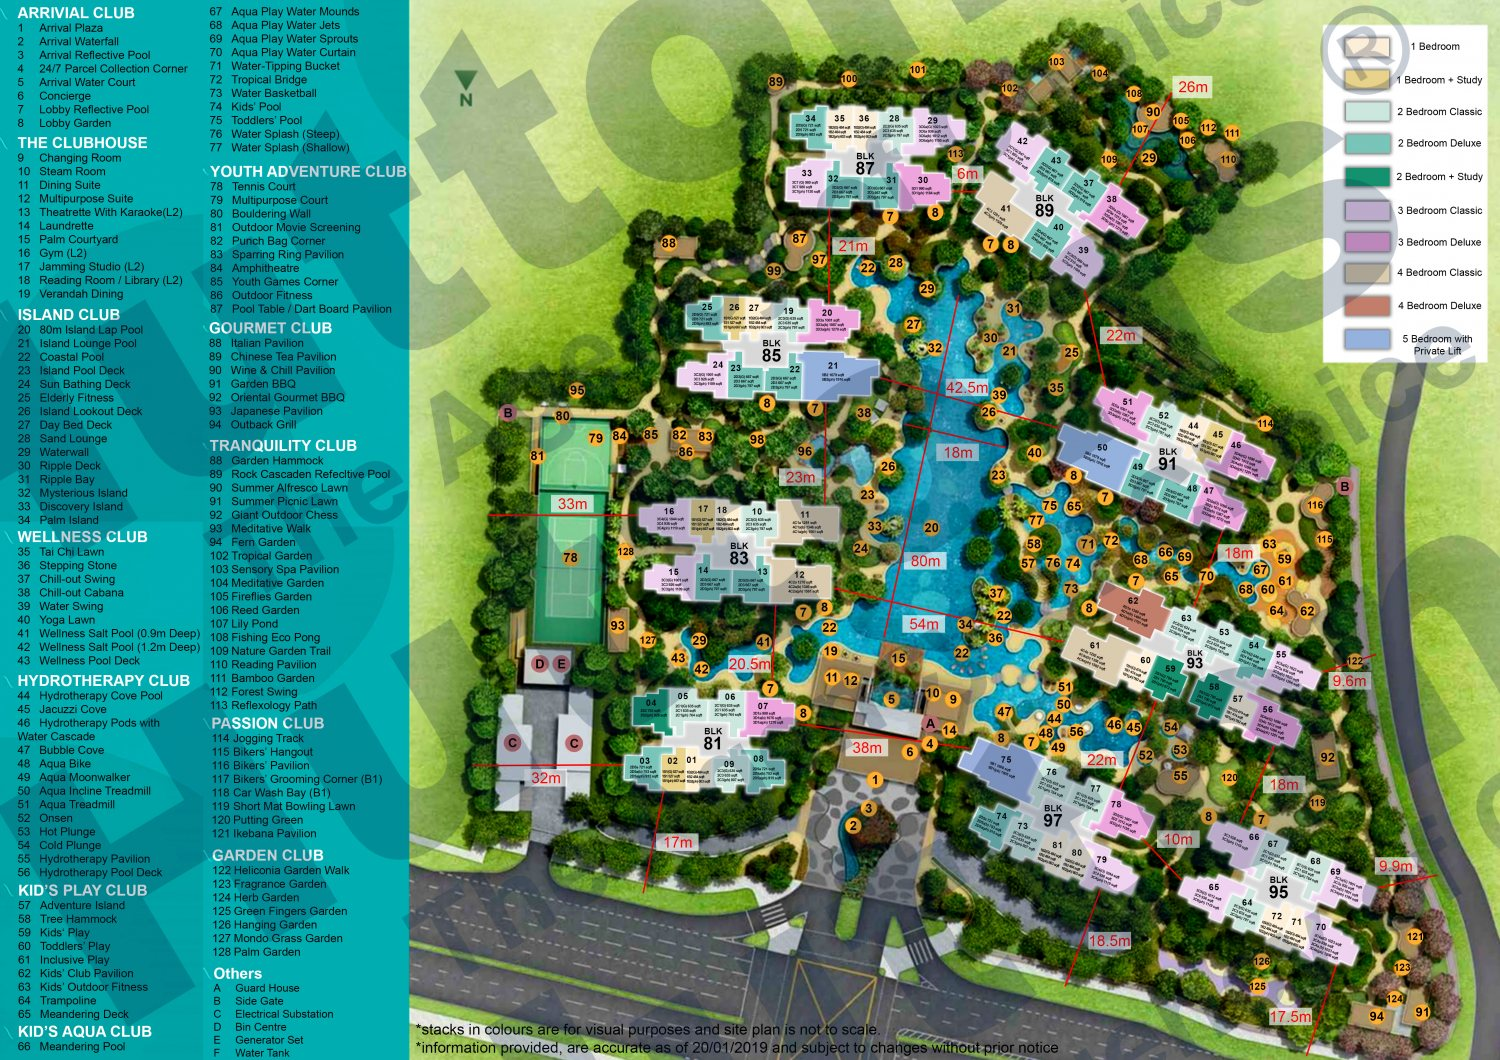 The Florence Residences Site Plan